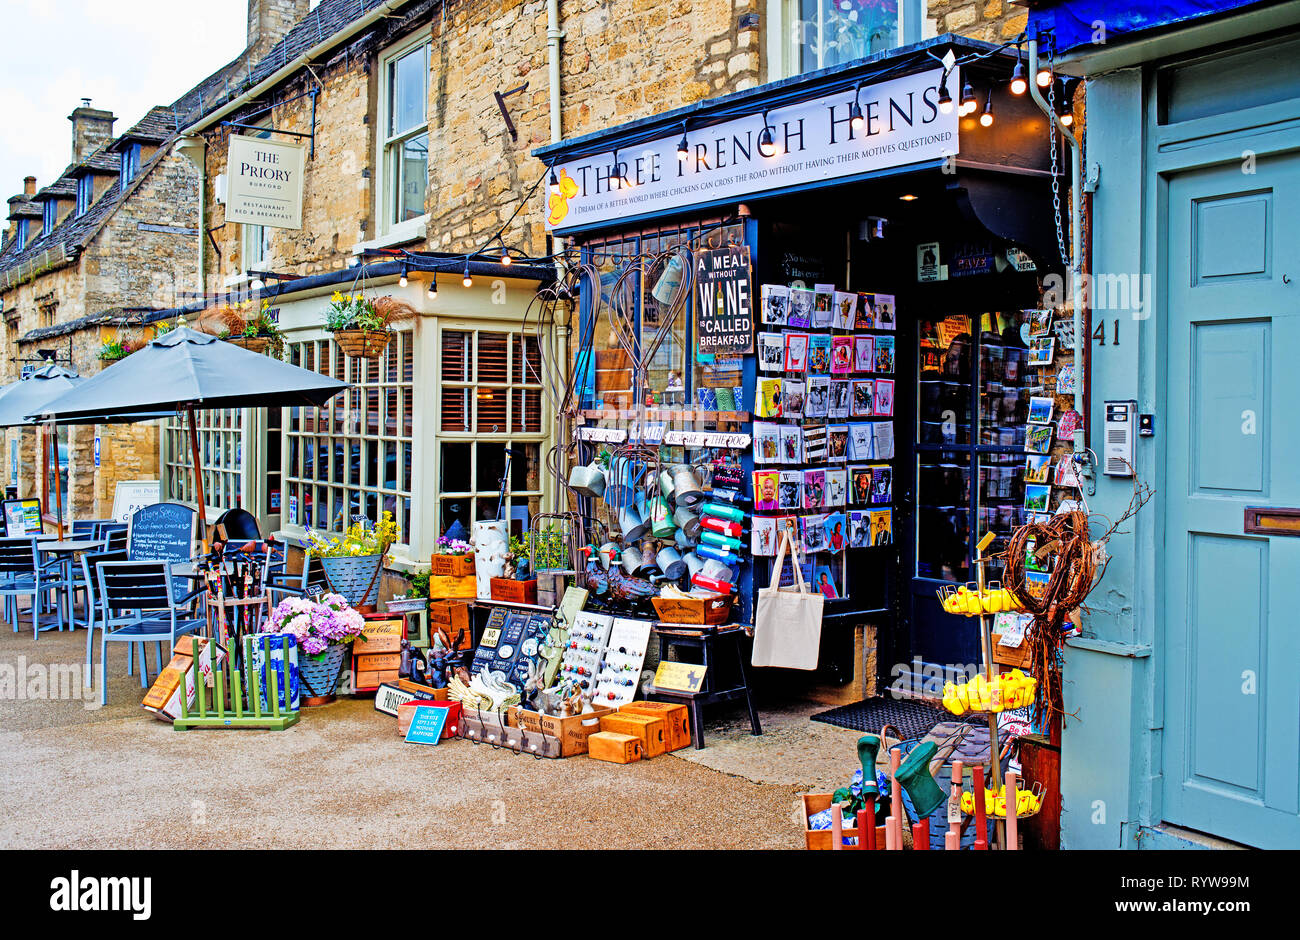 Three French Hens Store, Burford, Oxfordshire, England - Stock Image